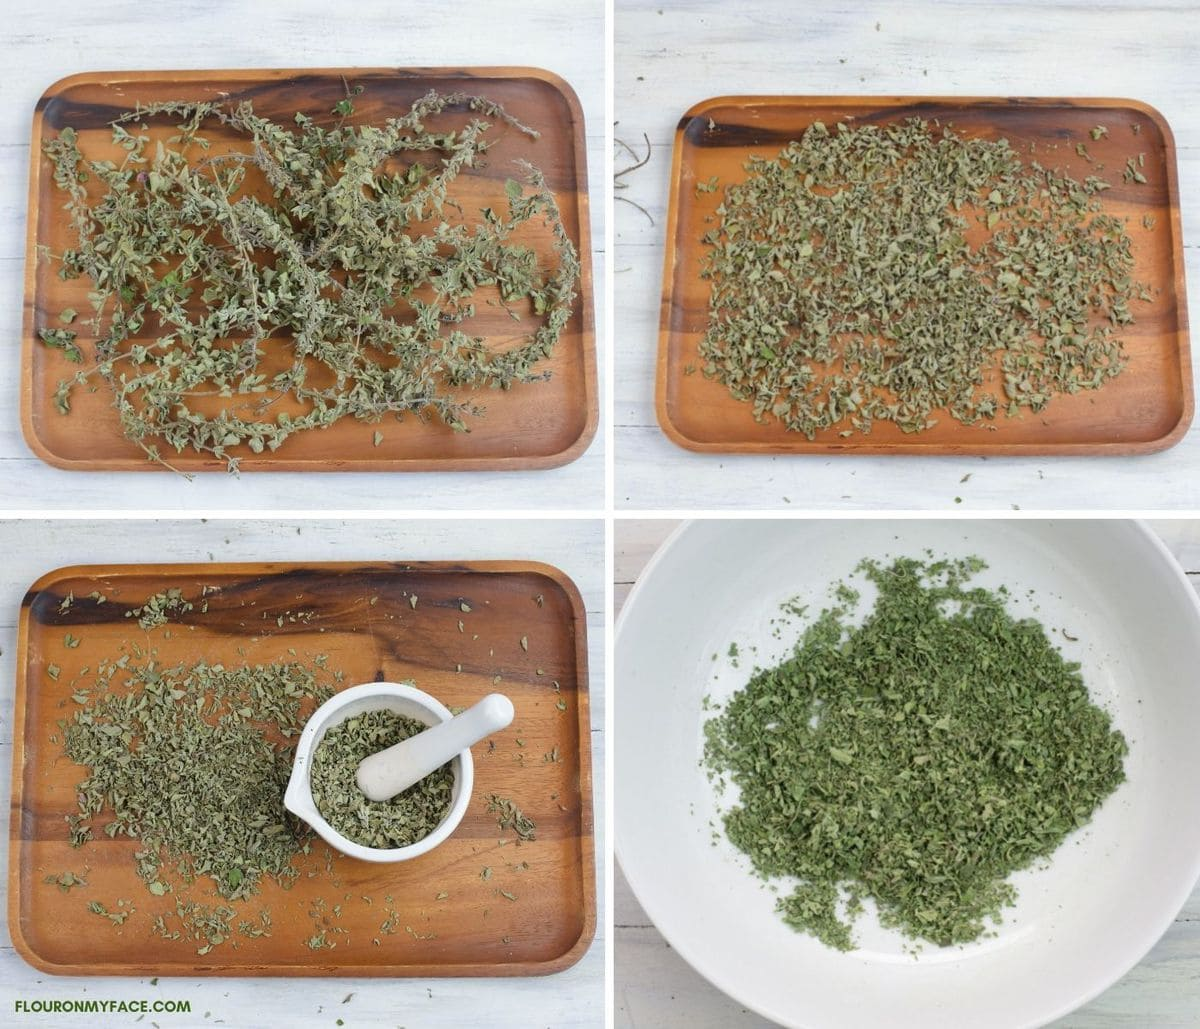 Four photo collage of the steps needed to strip and crush dried oregano stems.